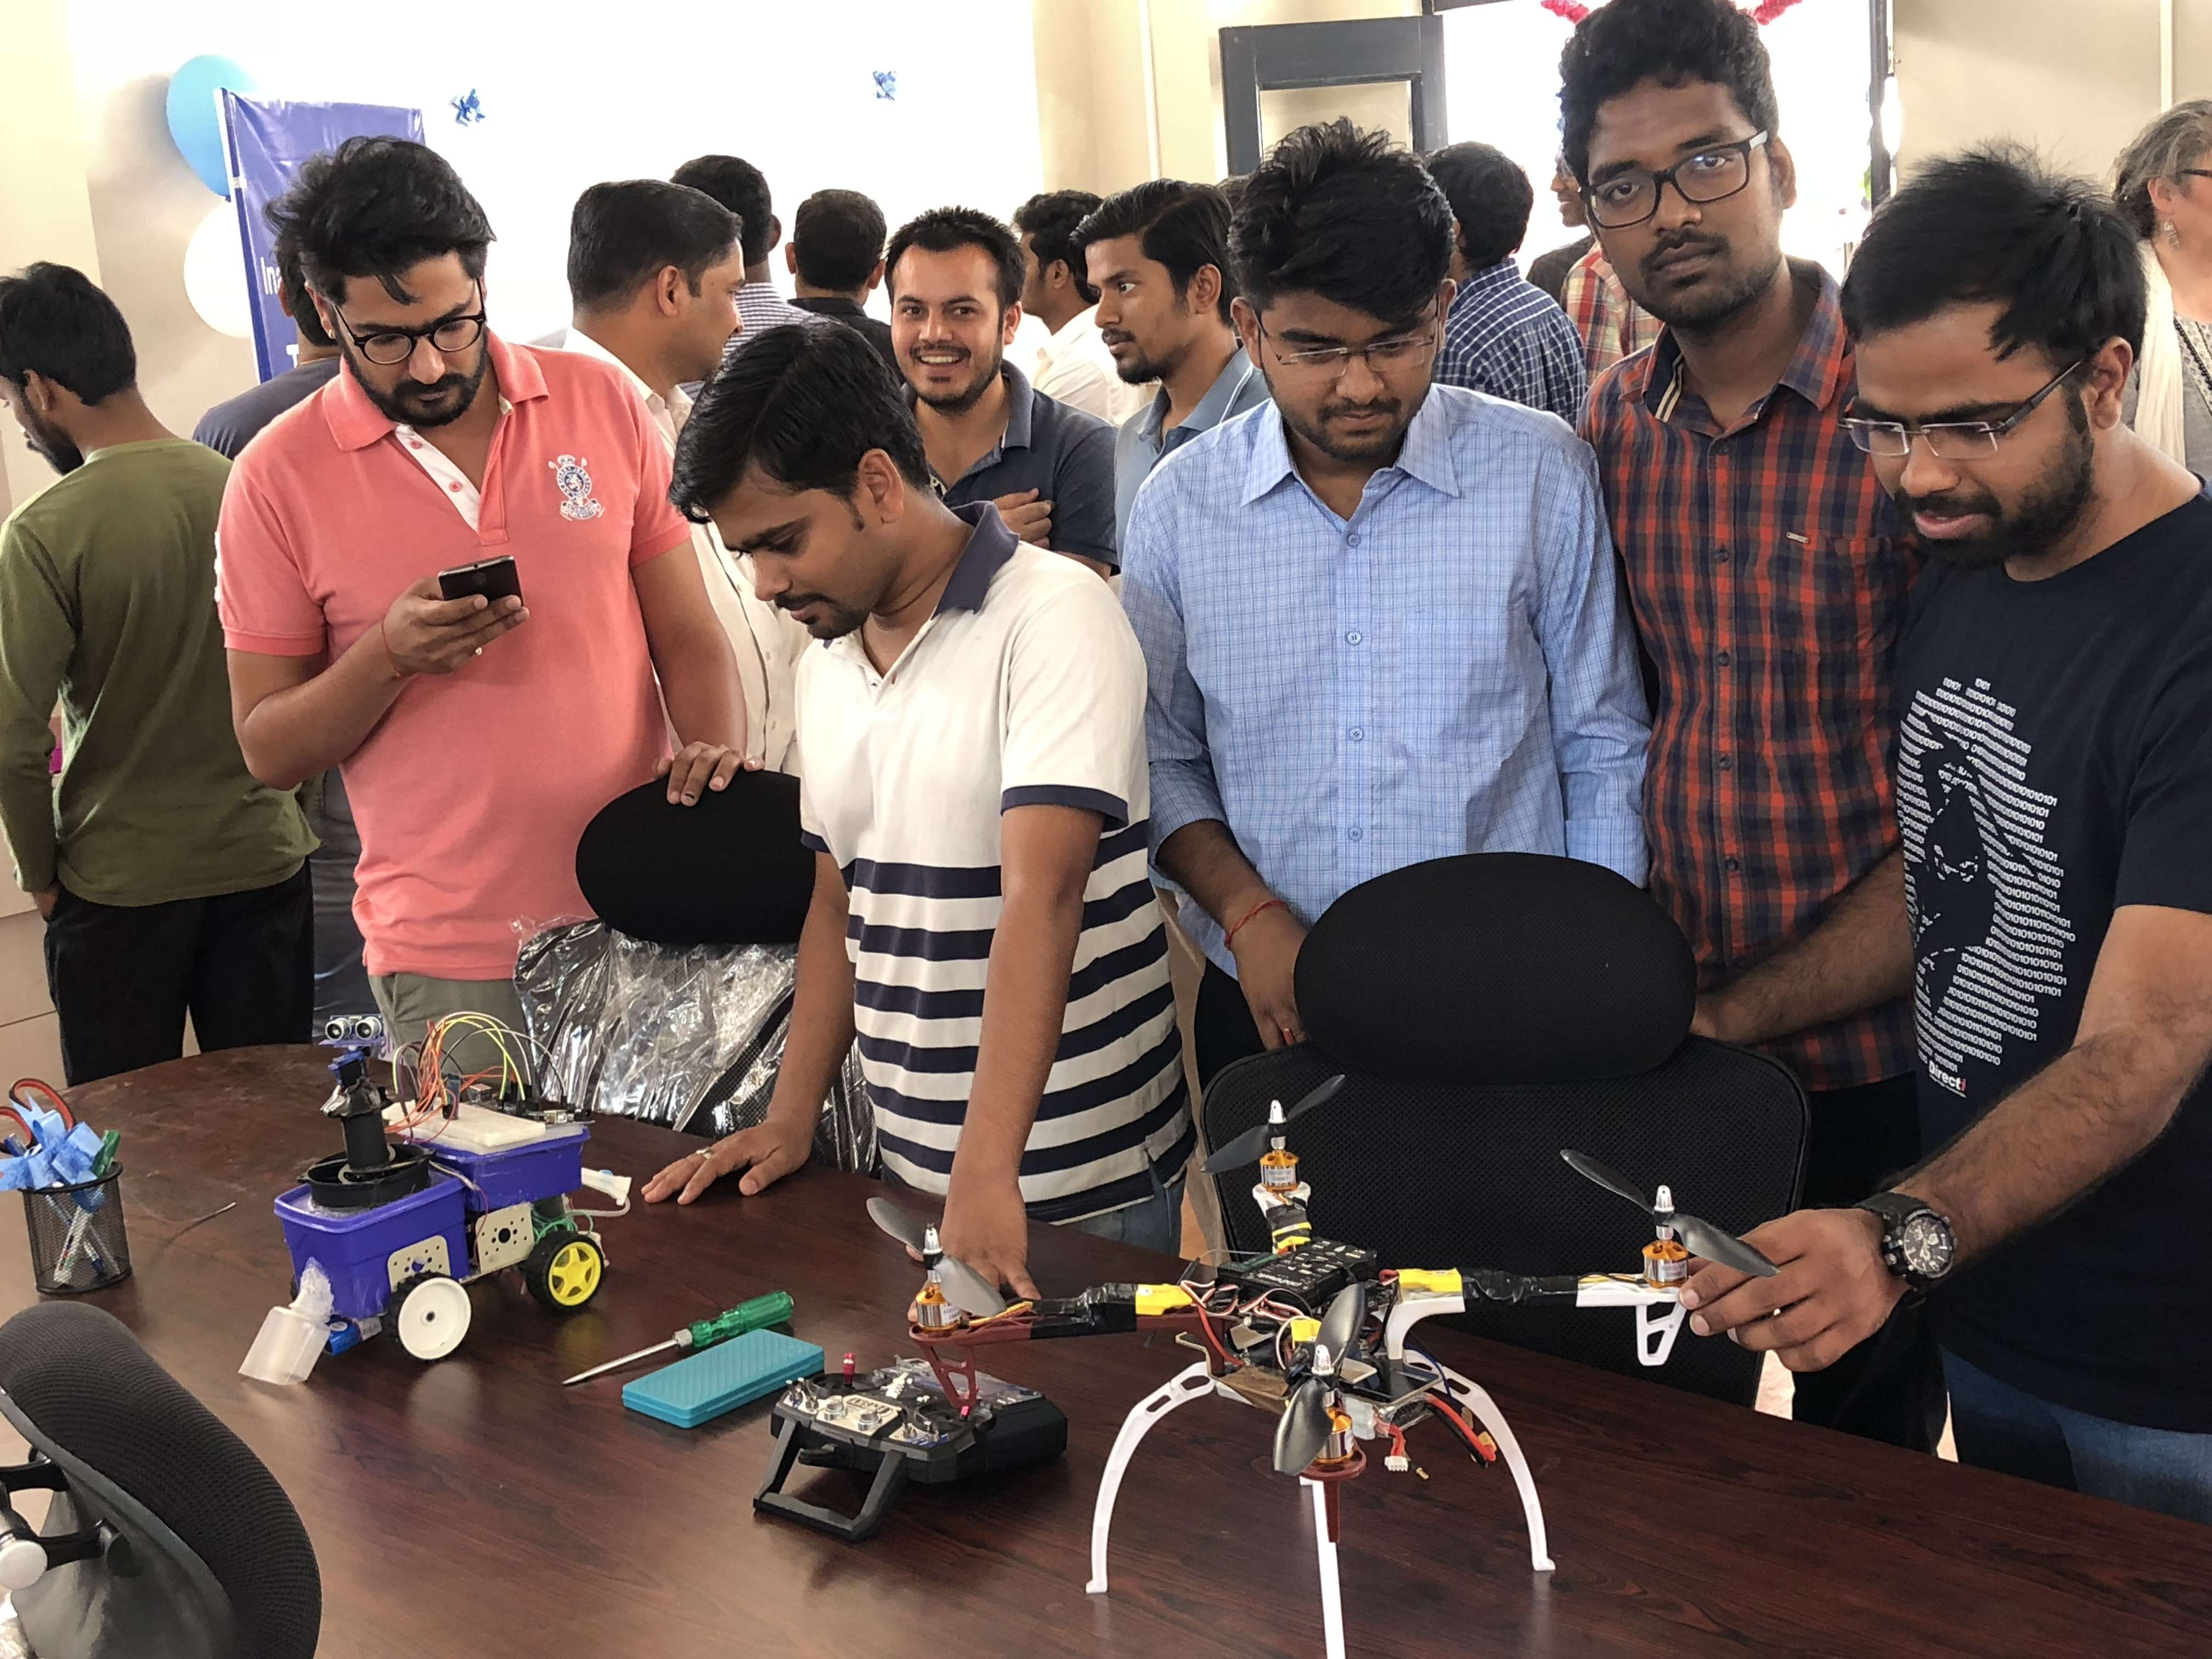 Iit h launches tinkerers lab for do it yourself projects iit h launches tinkerers lab for do it yourself projects times of india solutioingenieria Images